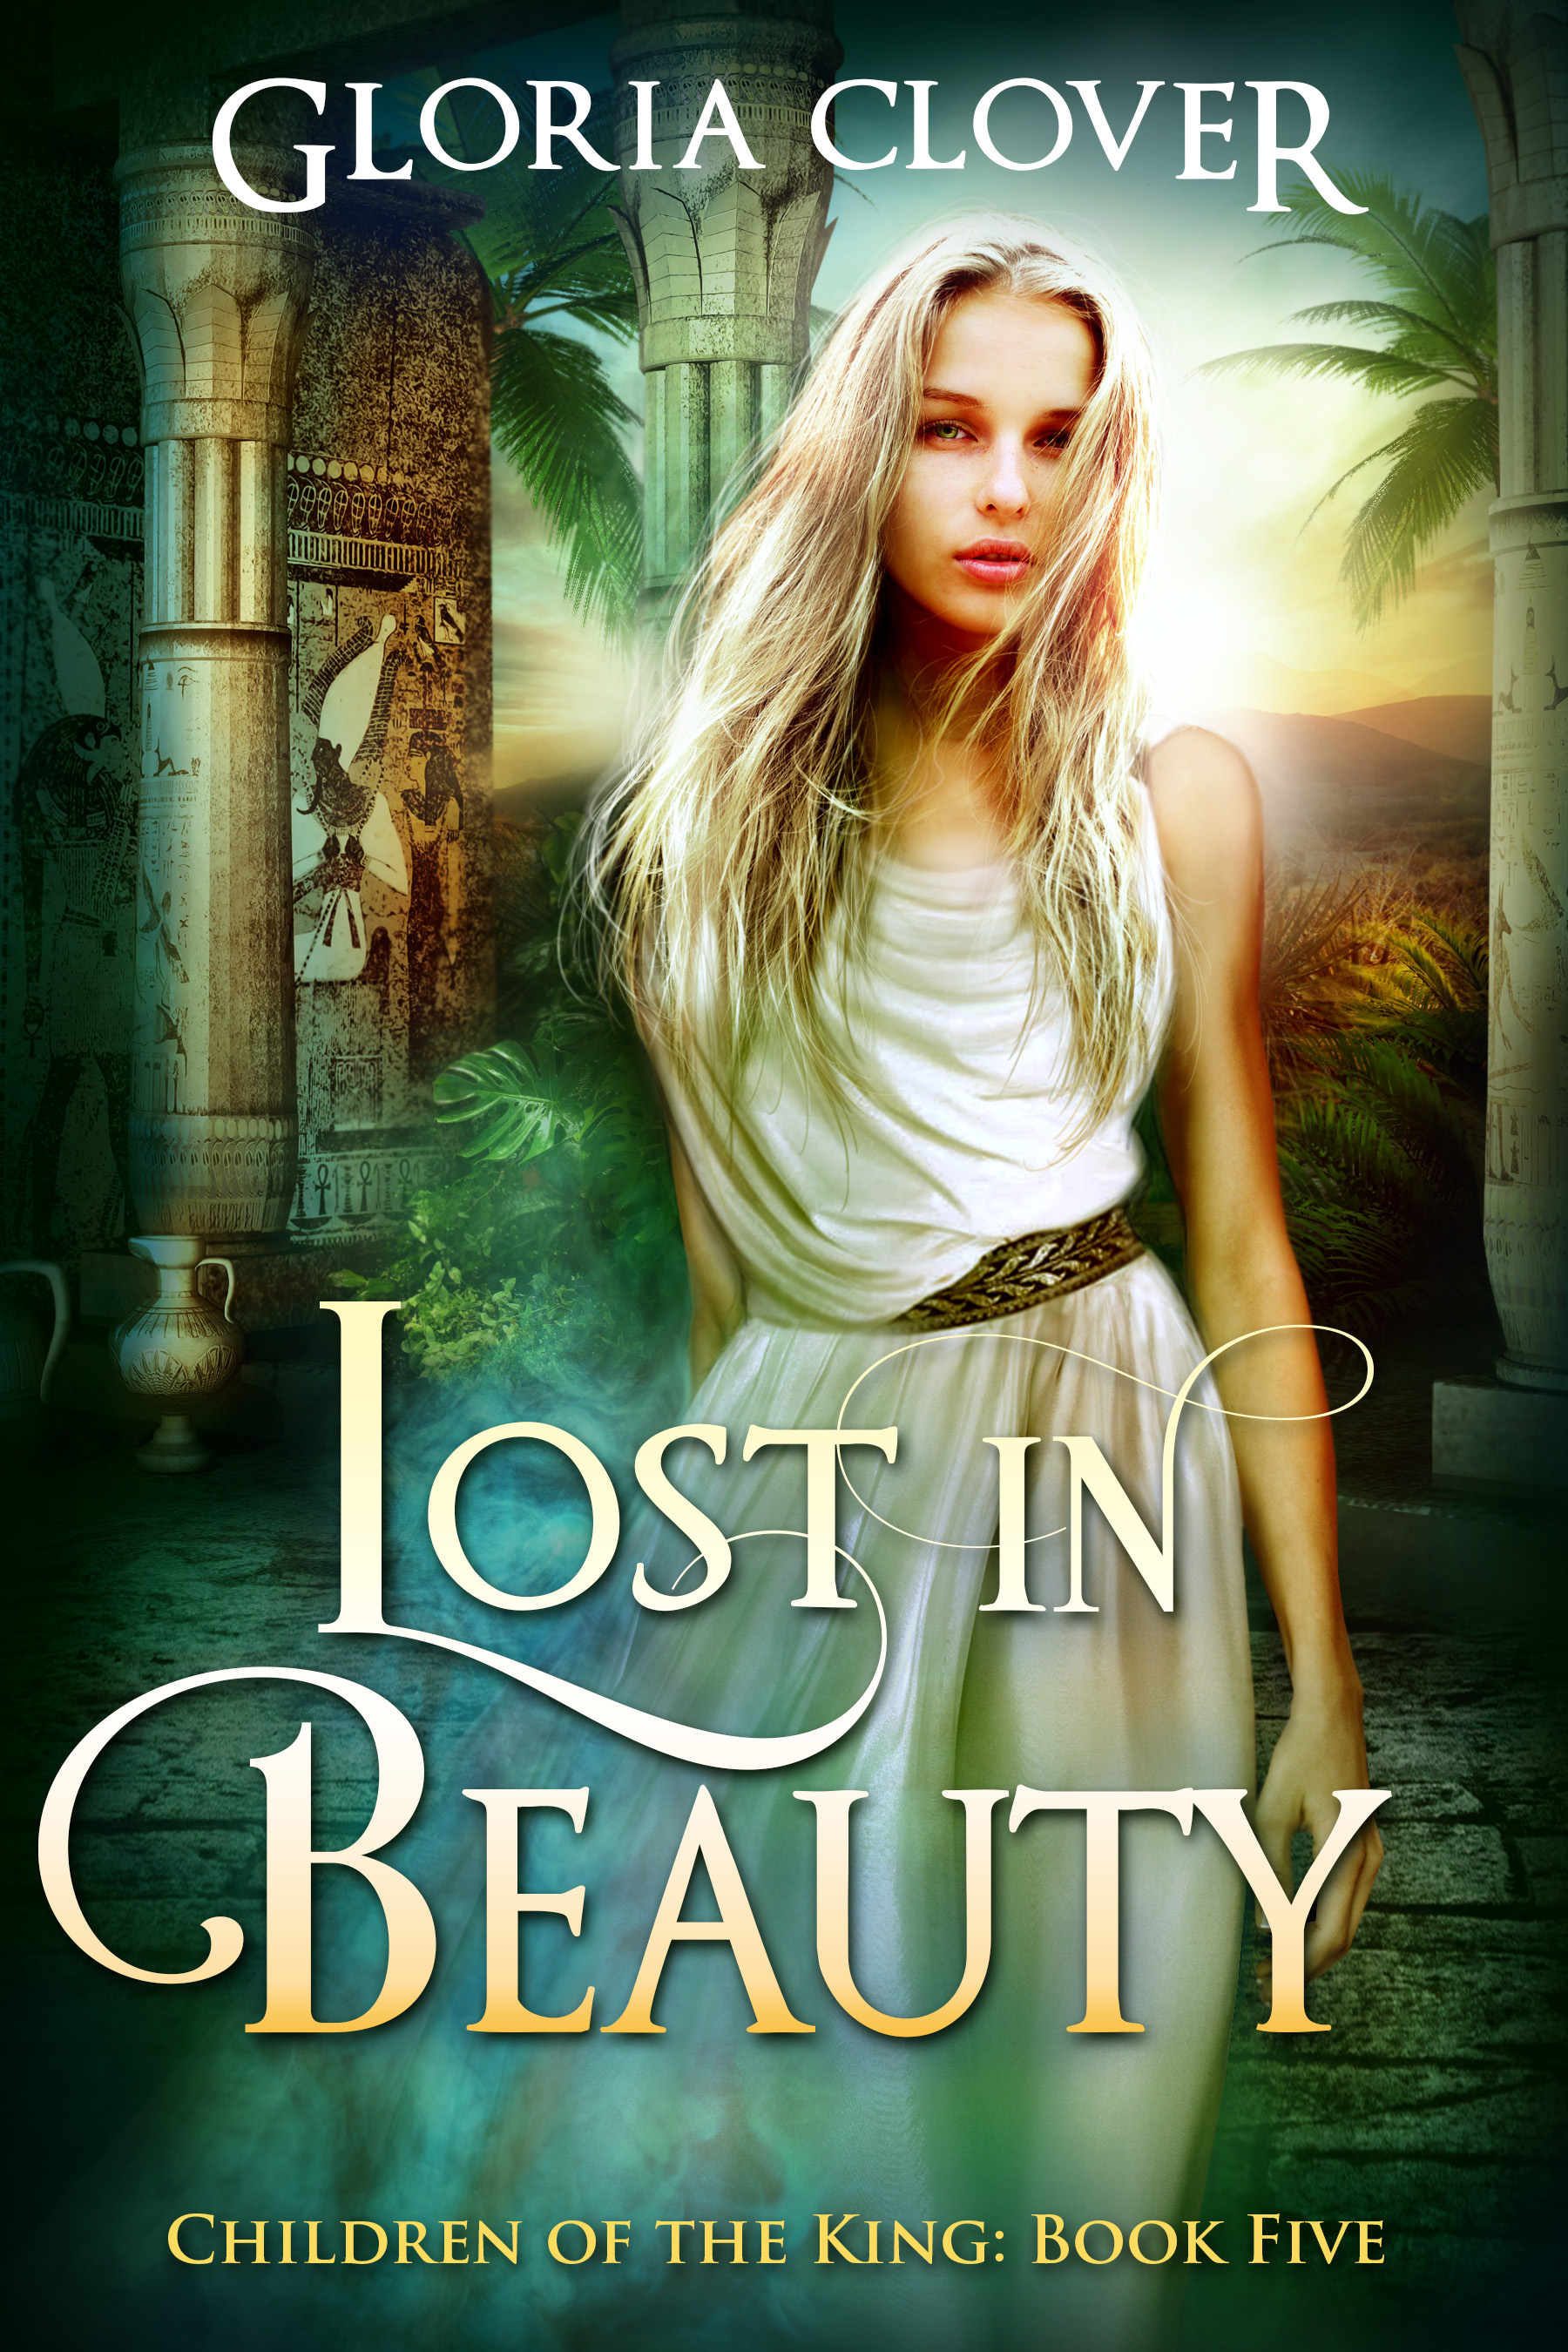 Lost In Beauty - Gloria Clover